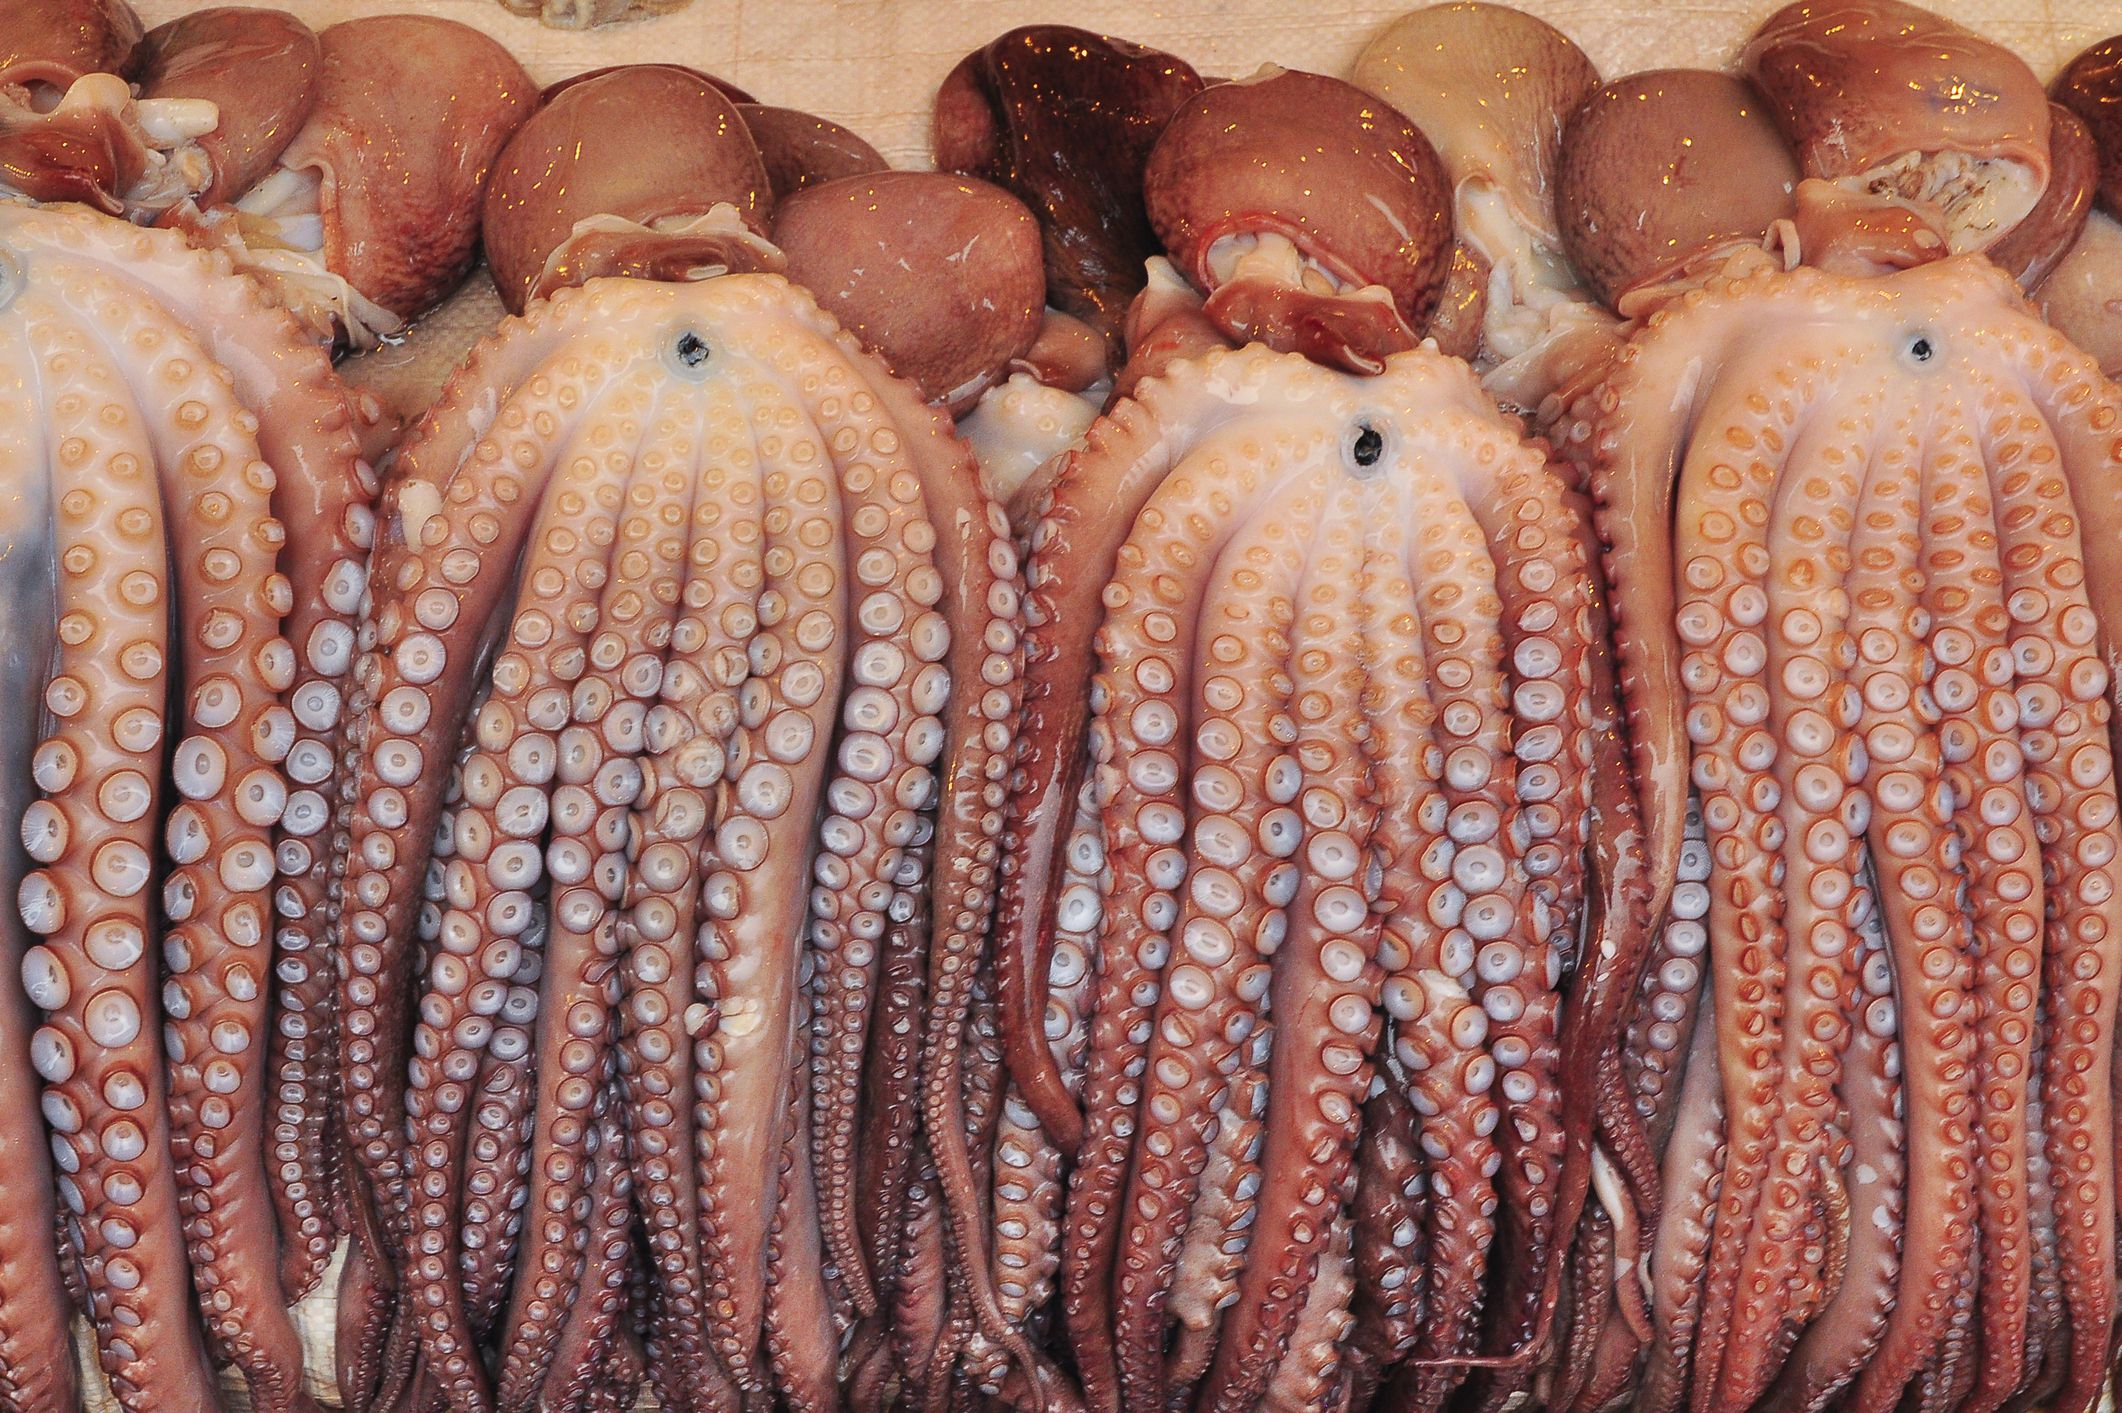 10 Facts About Mollusks